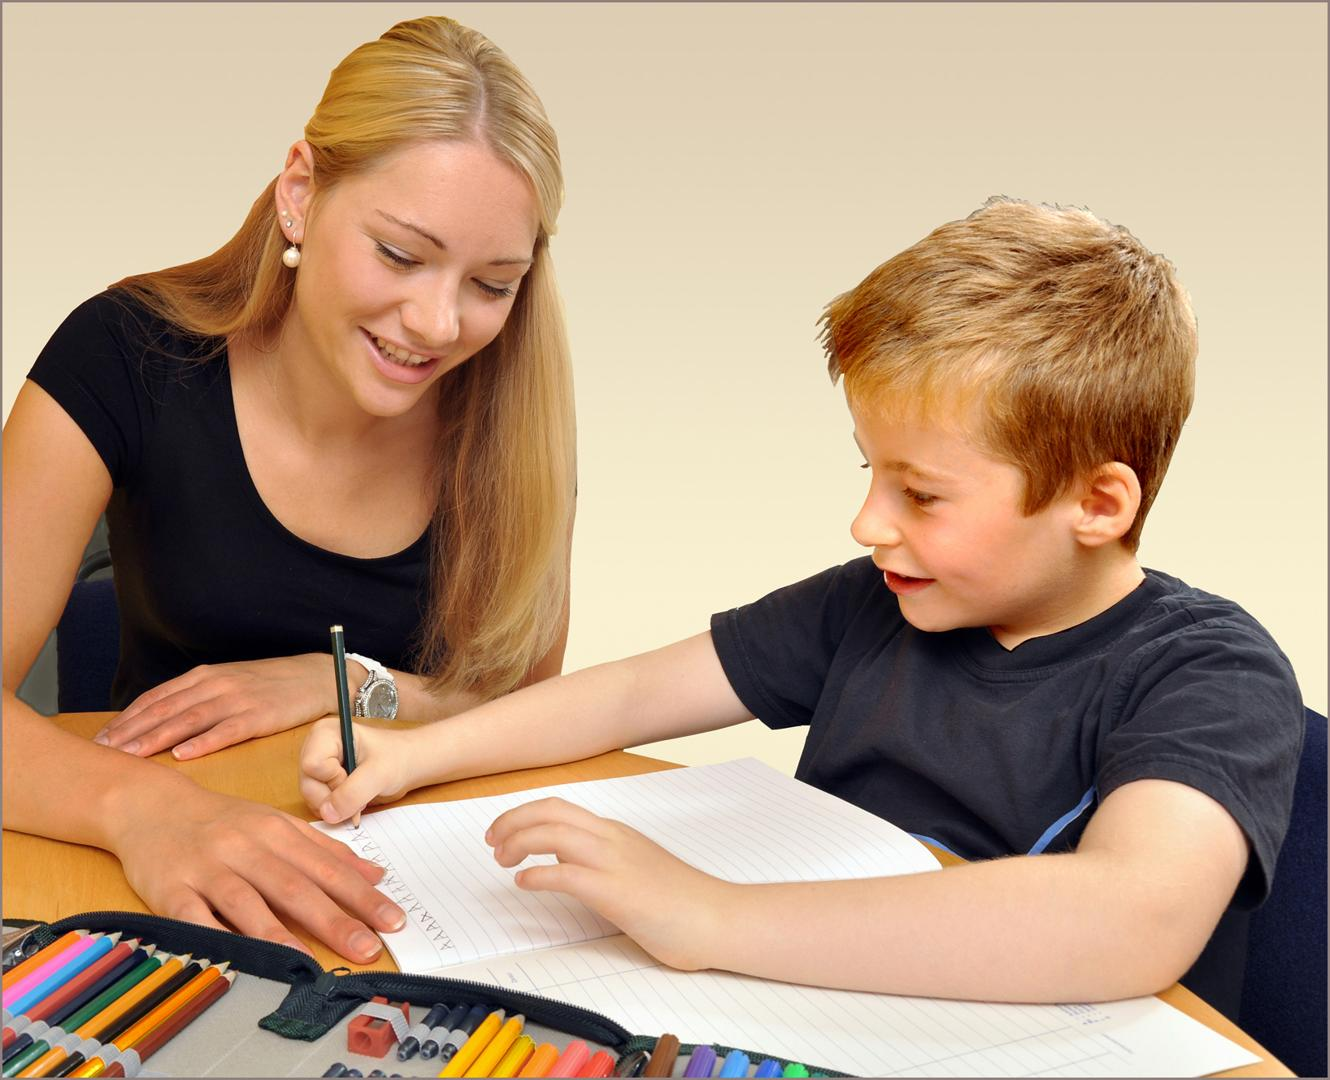 Tutor helping a boy with writing